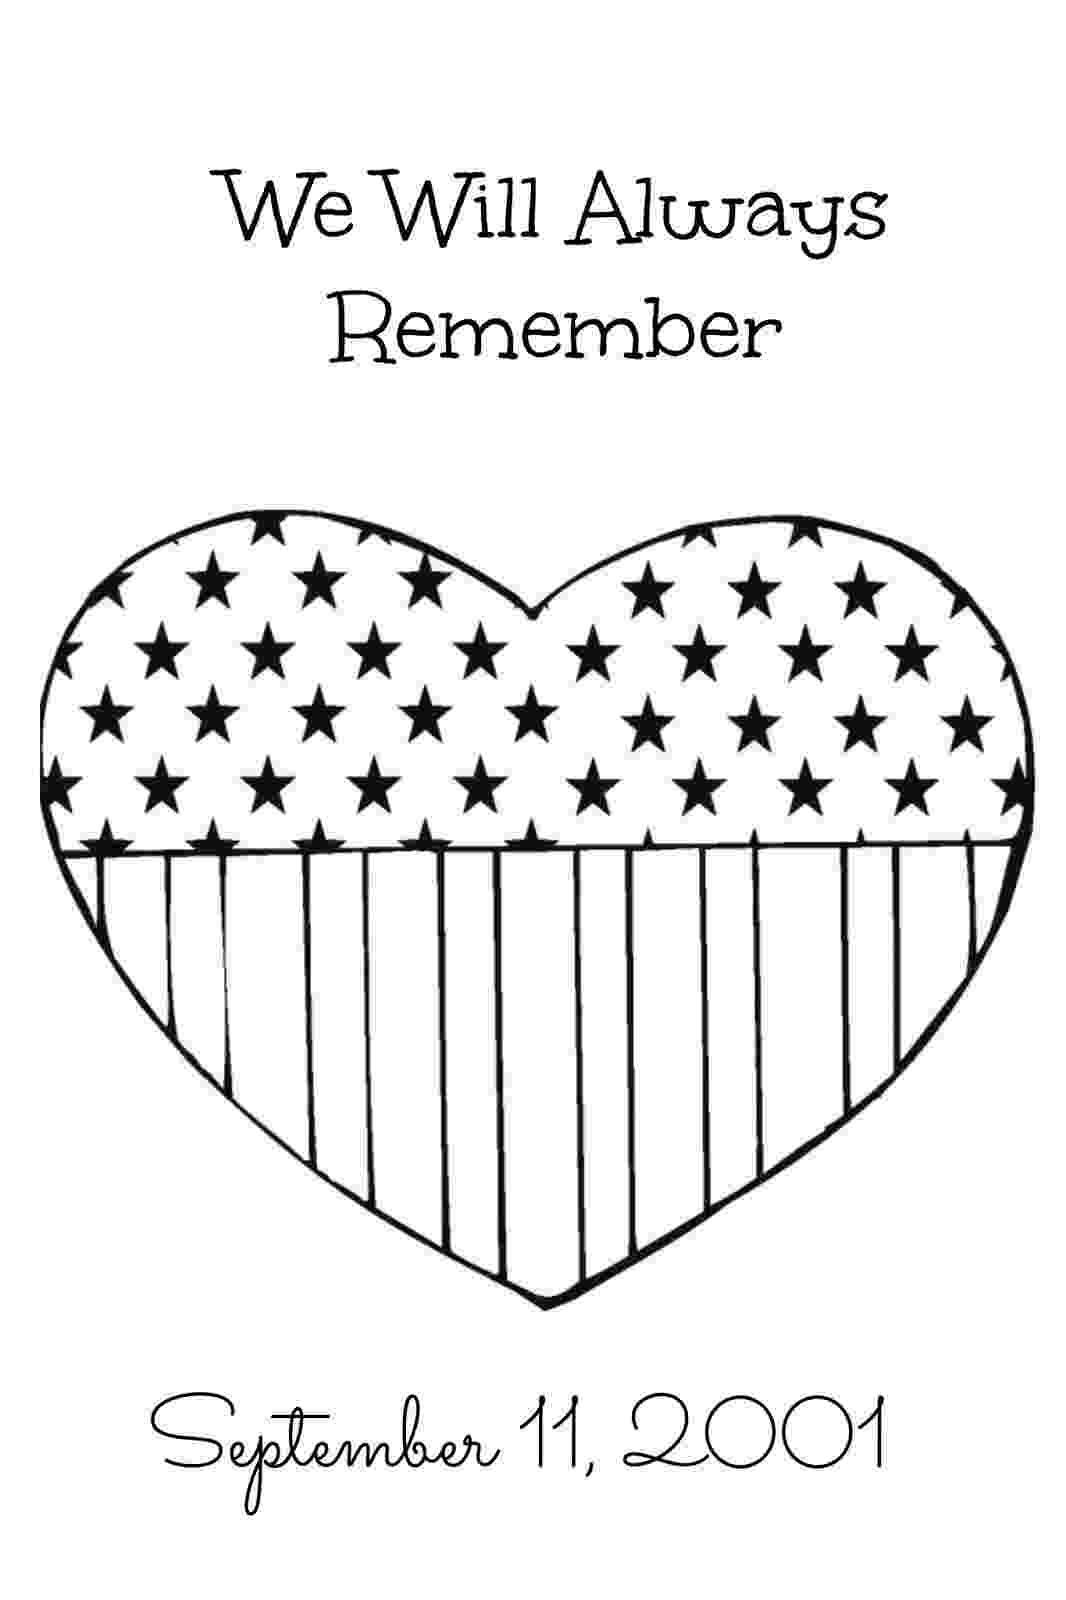 september 11 coloring pages we remember 9 11 01 coloring page free printable 11 pages coloring september